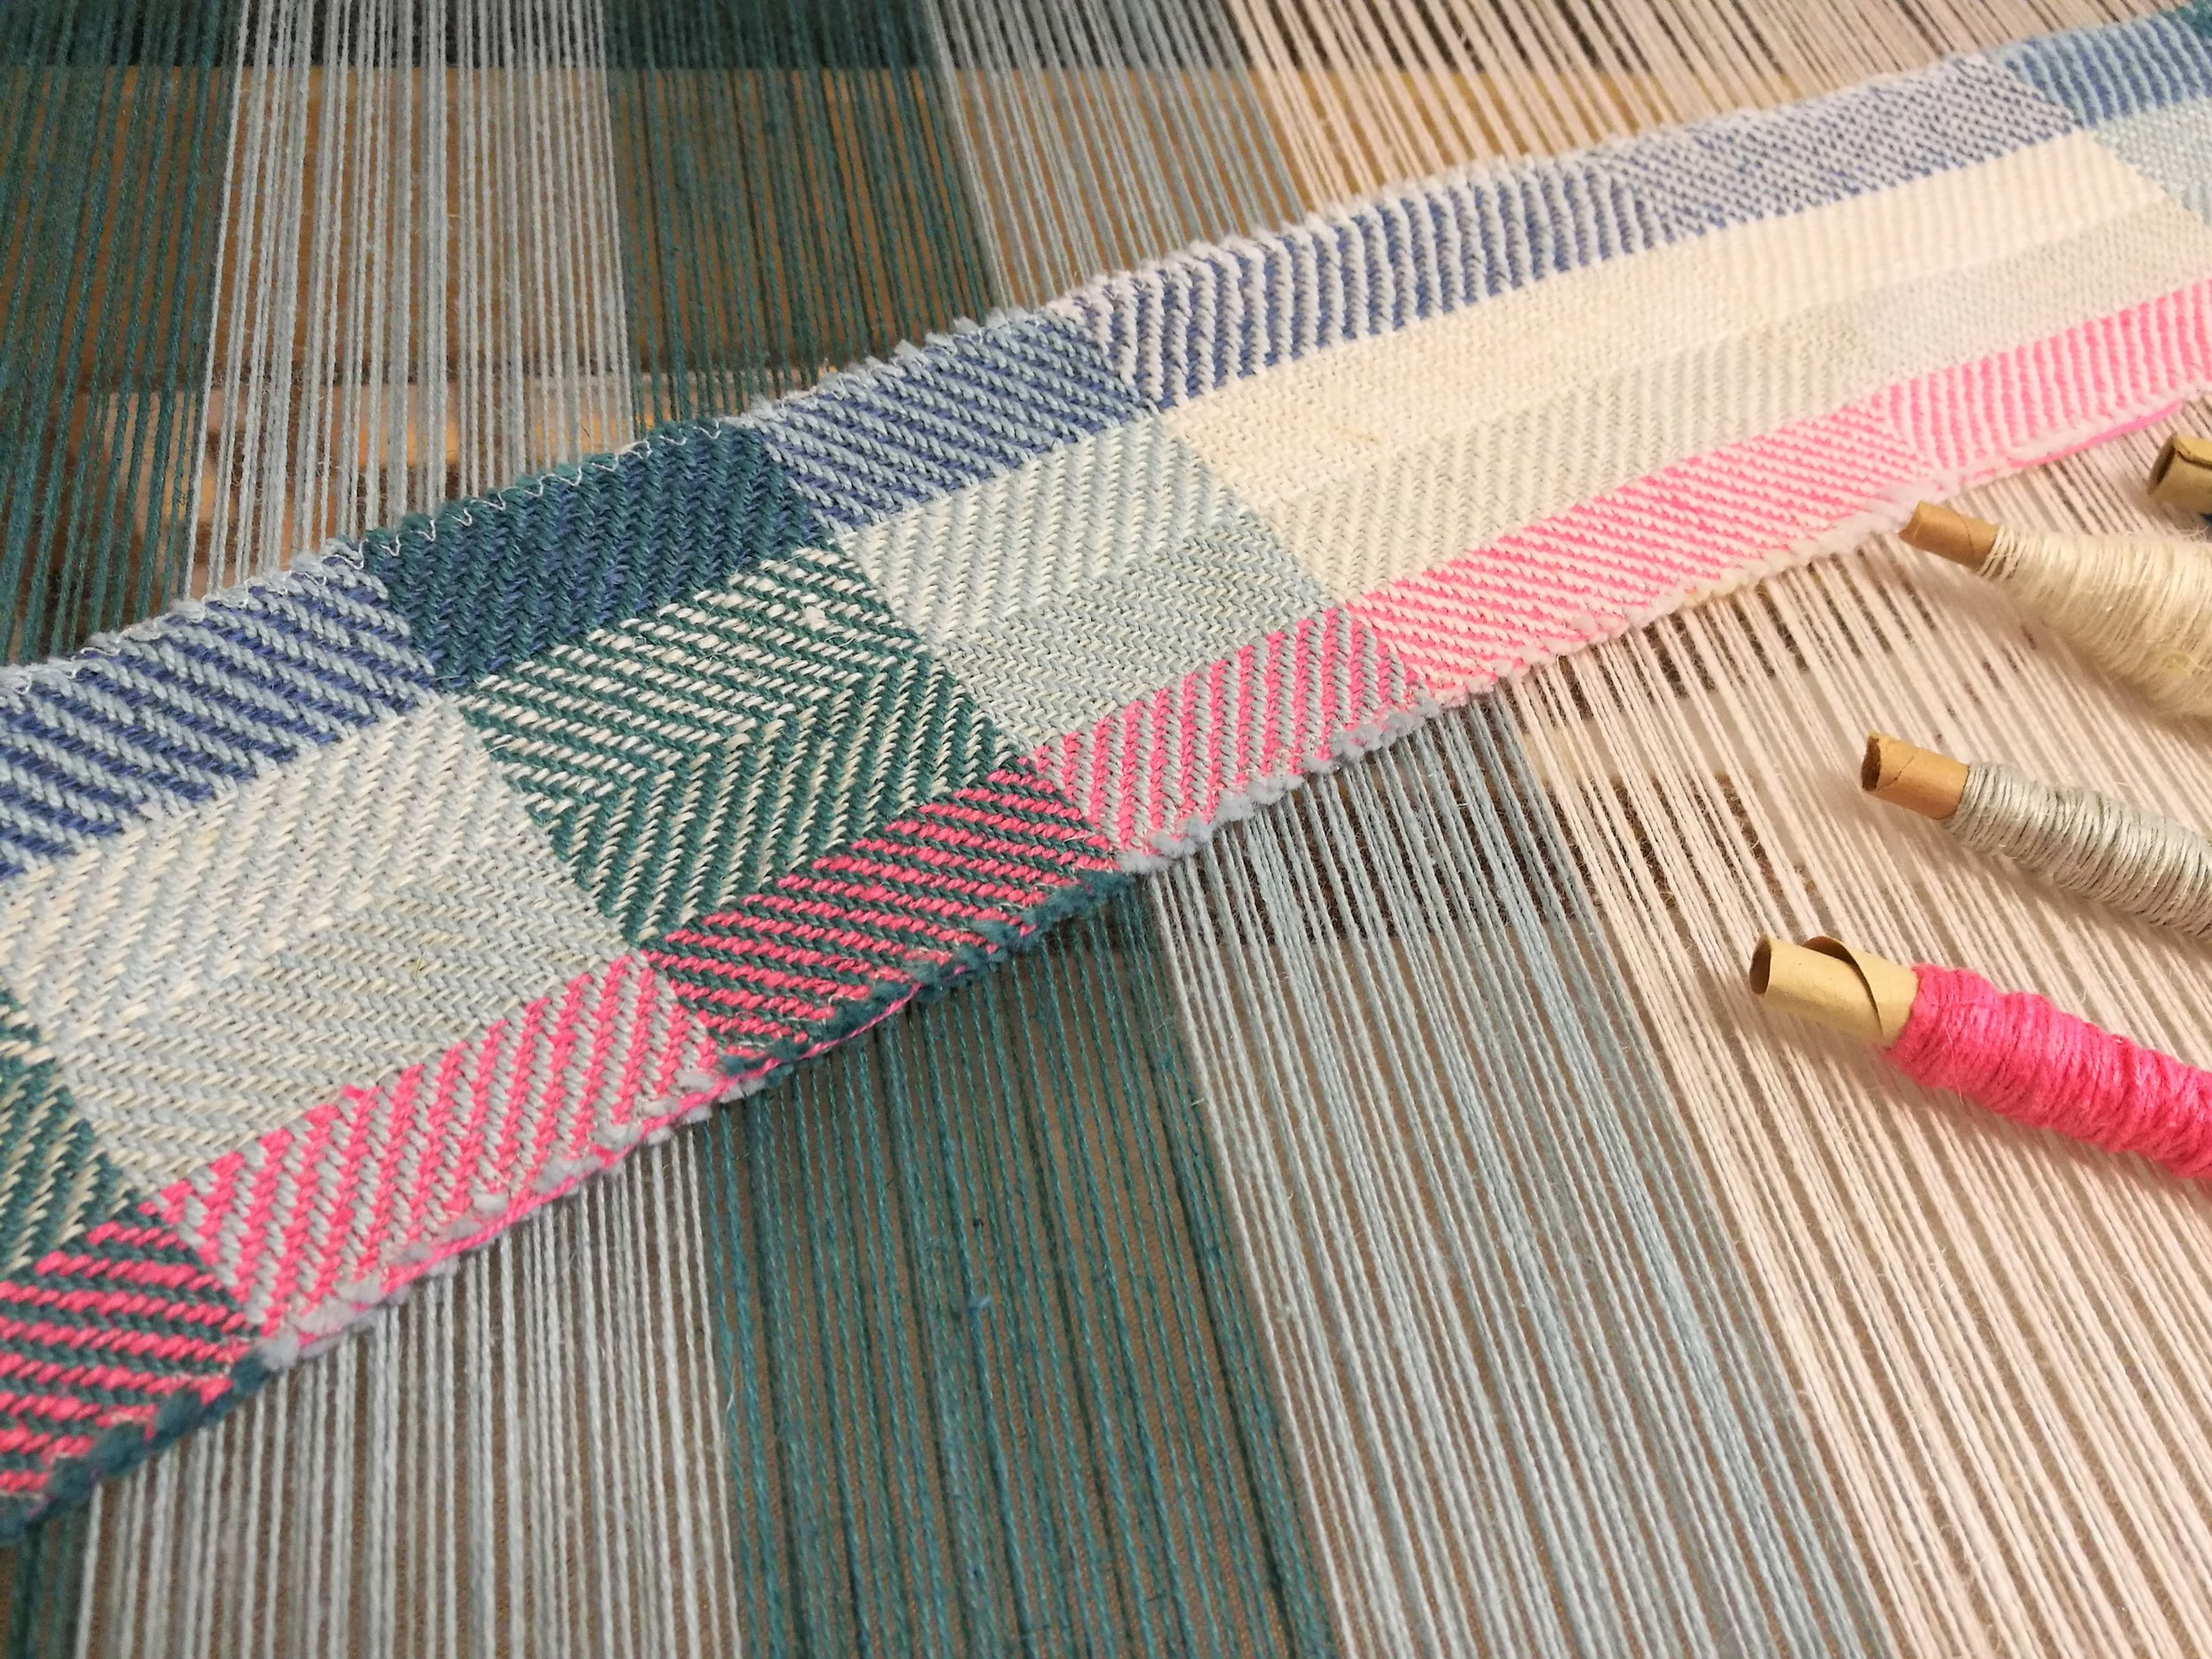 A sample woven with different weights of linen and cotton-linen blend yarns